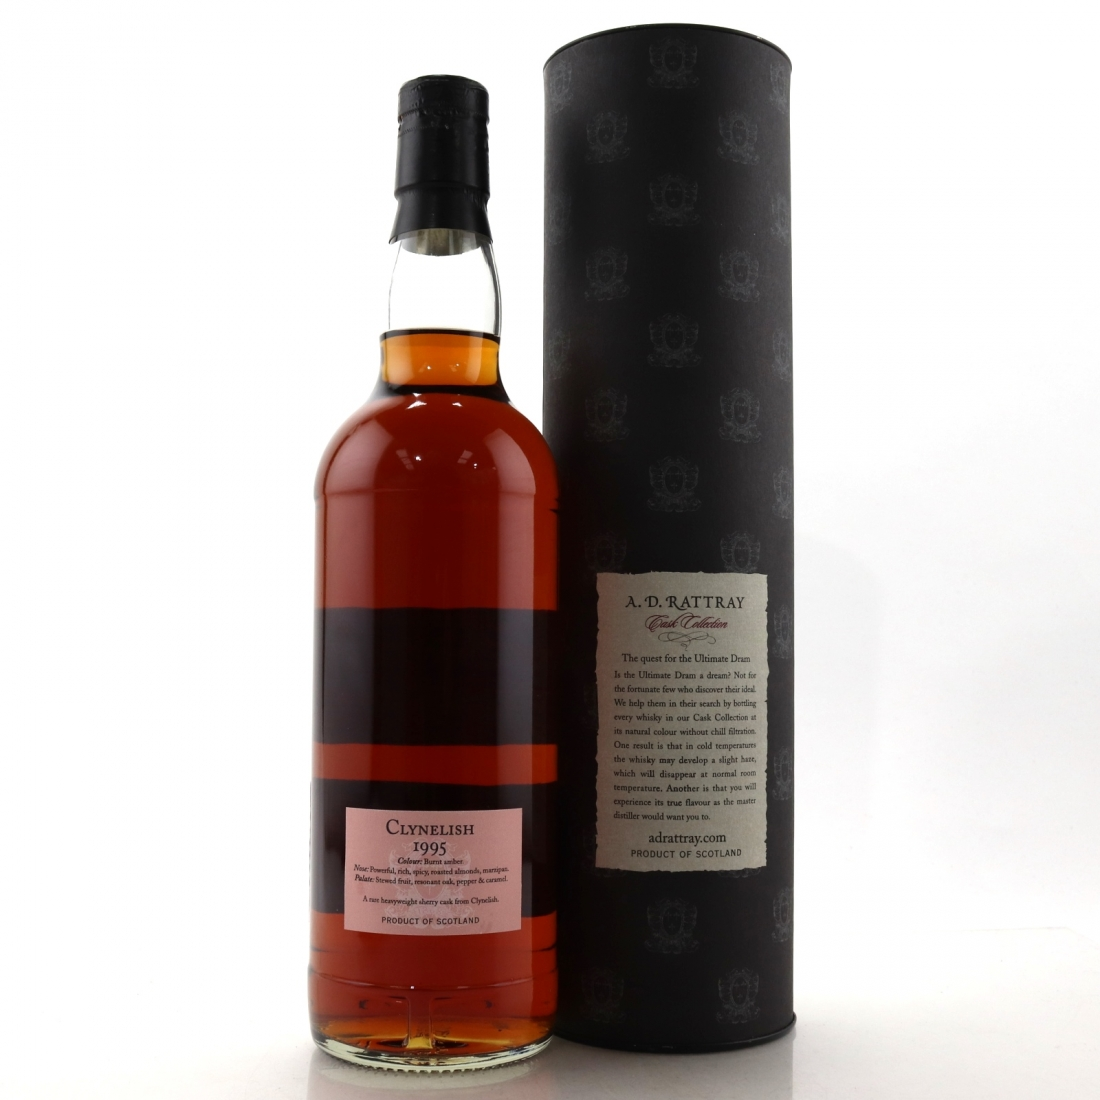 Clynelish 1995 A D  Rattray 15 Year Old / Alba Import